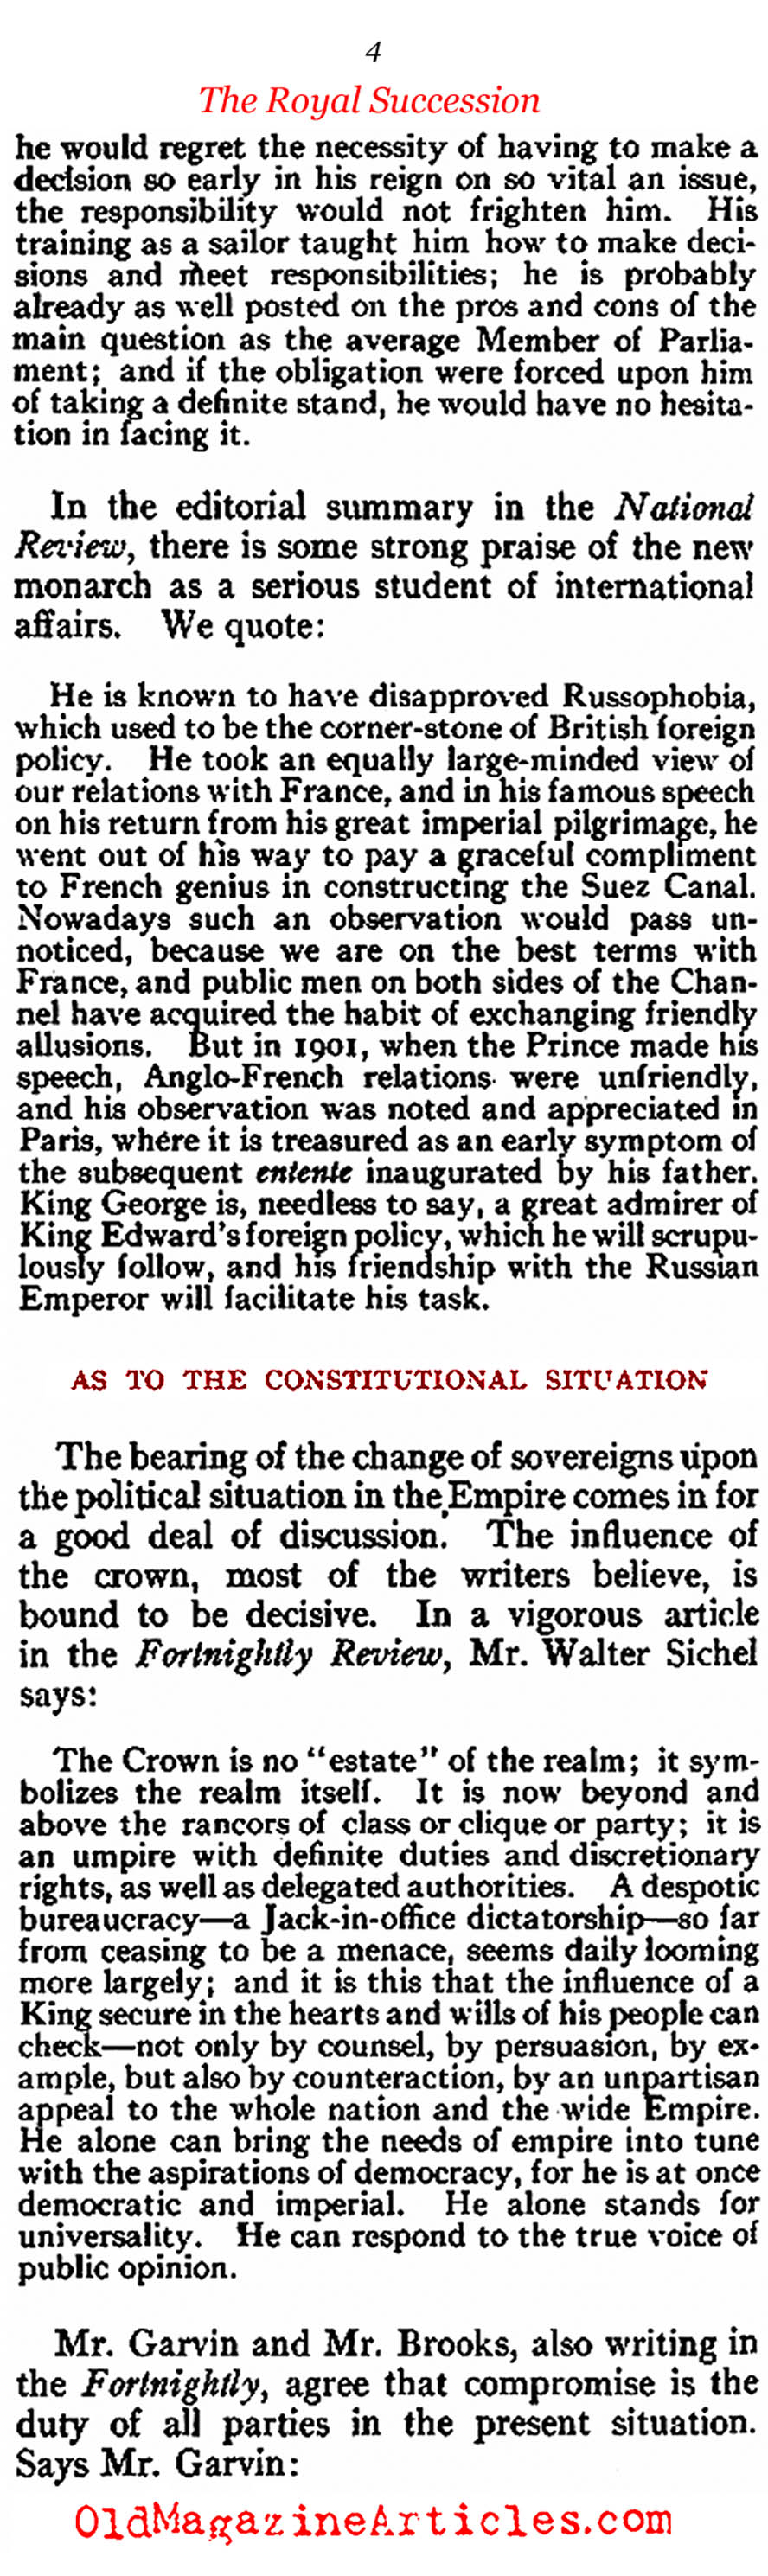 The Death of Edward VII & the Accession George V (Review of Reviews, 1910)